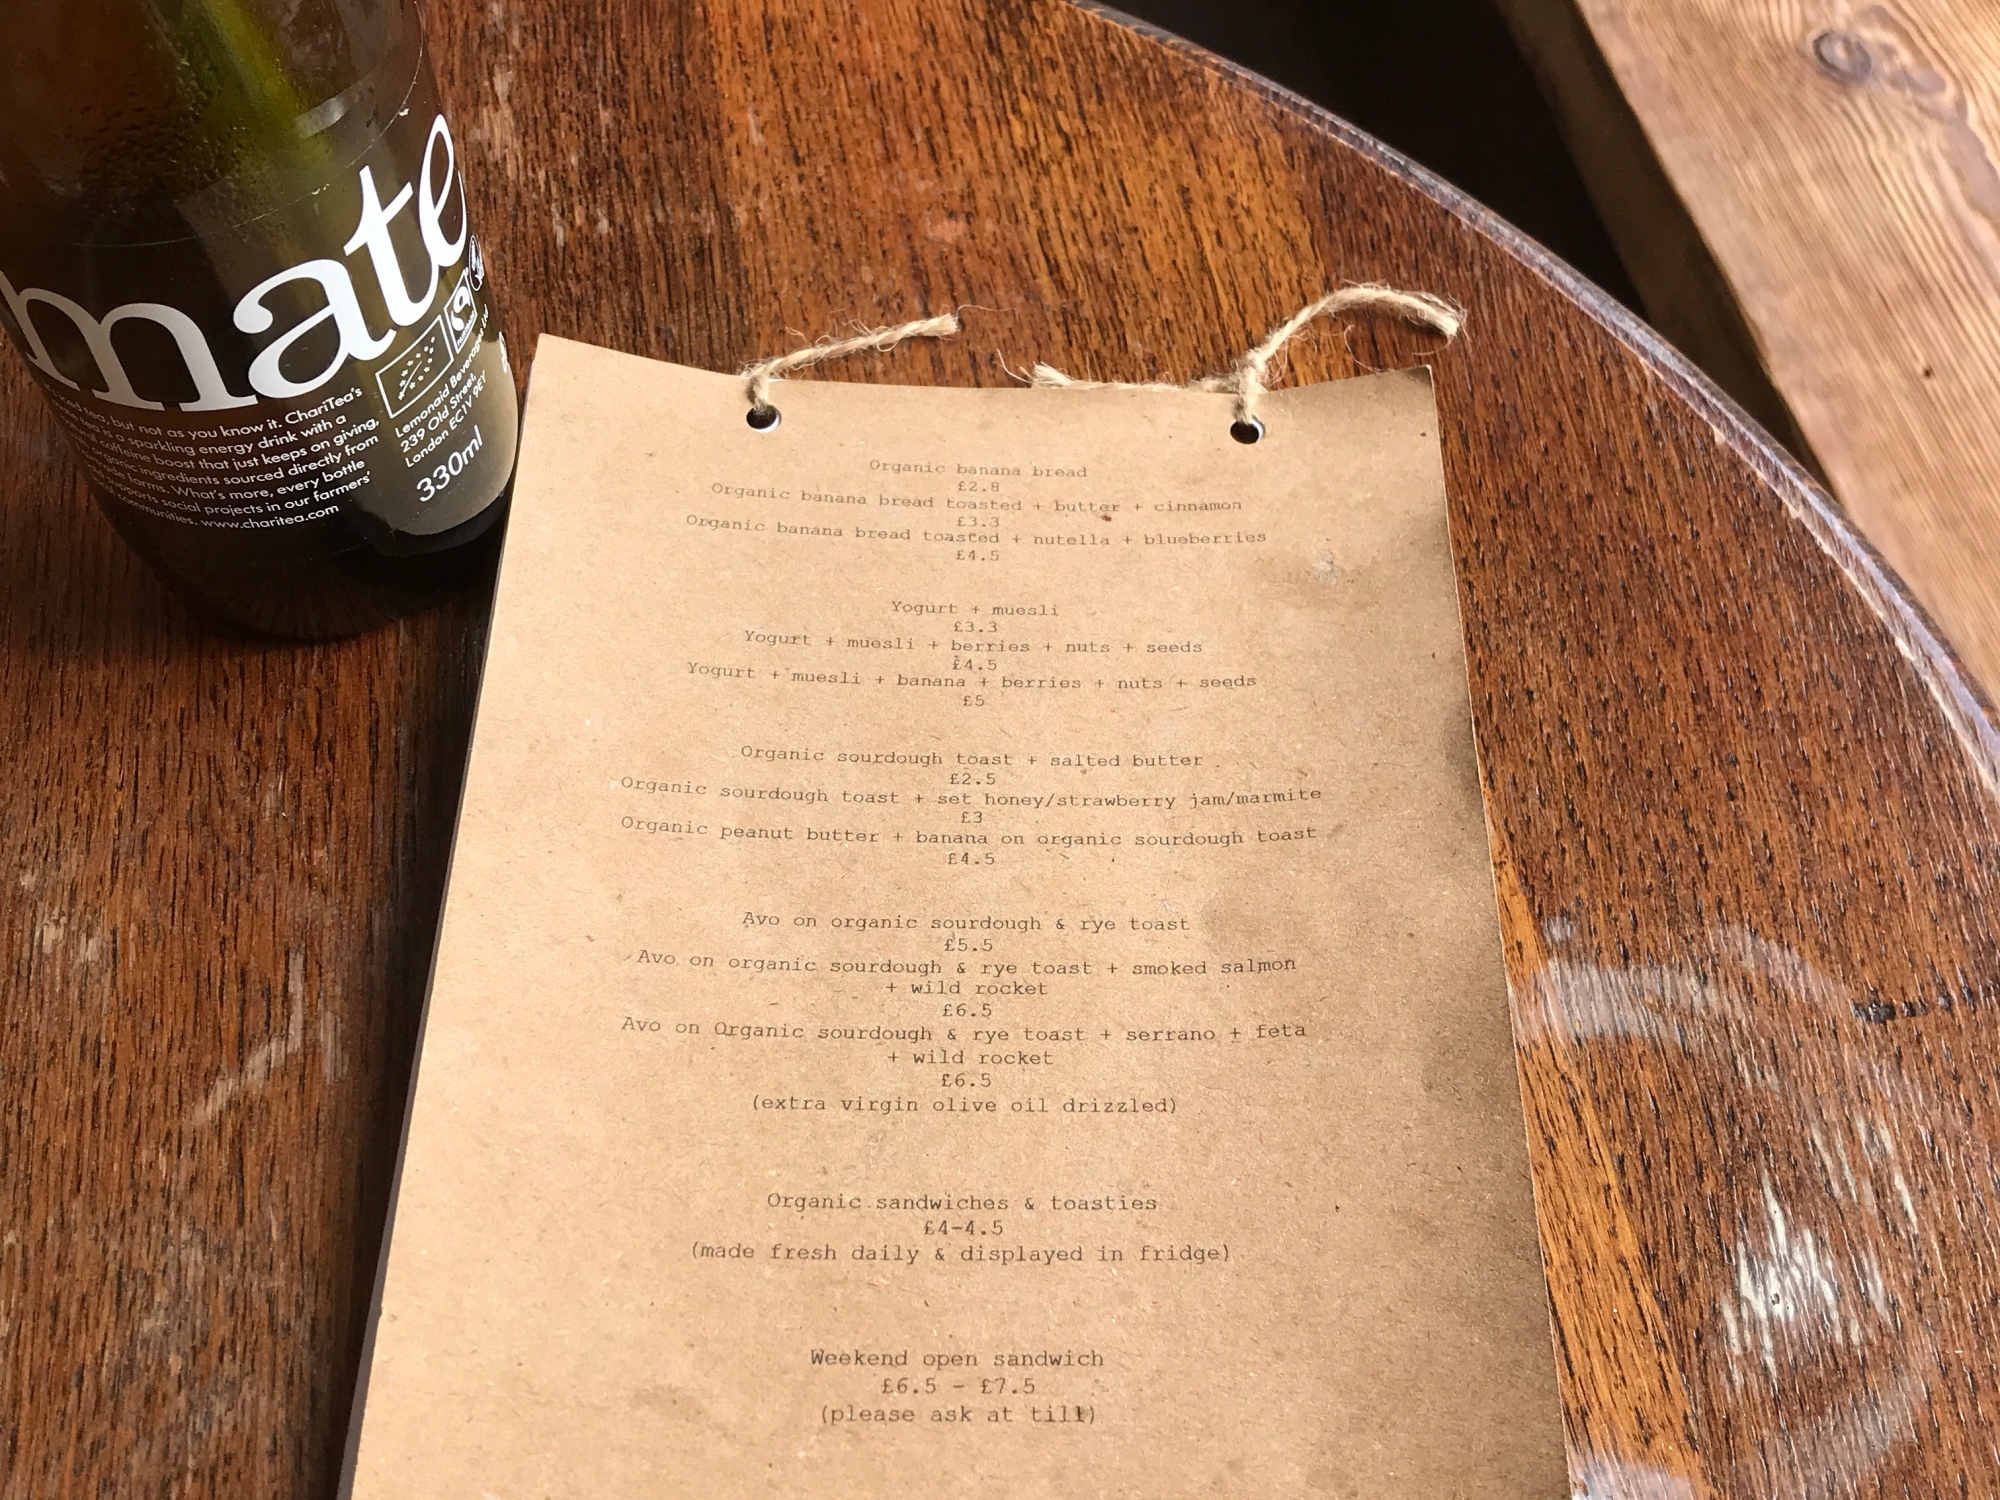 Sugar Pot's menu